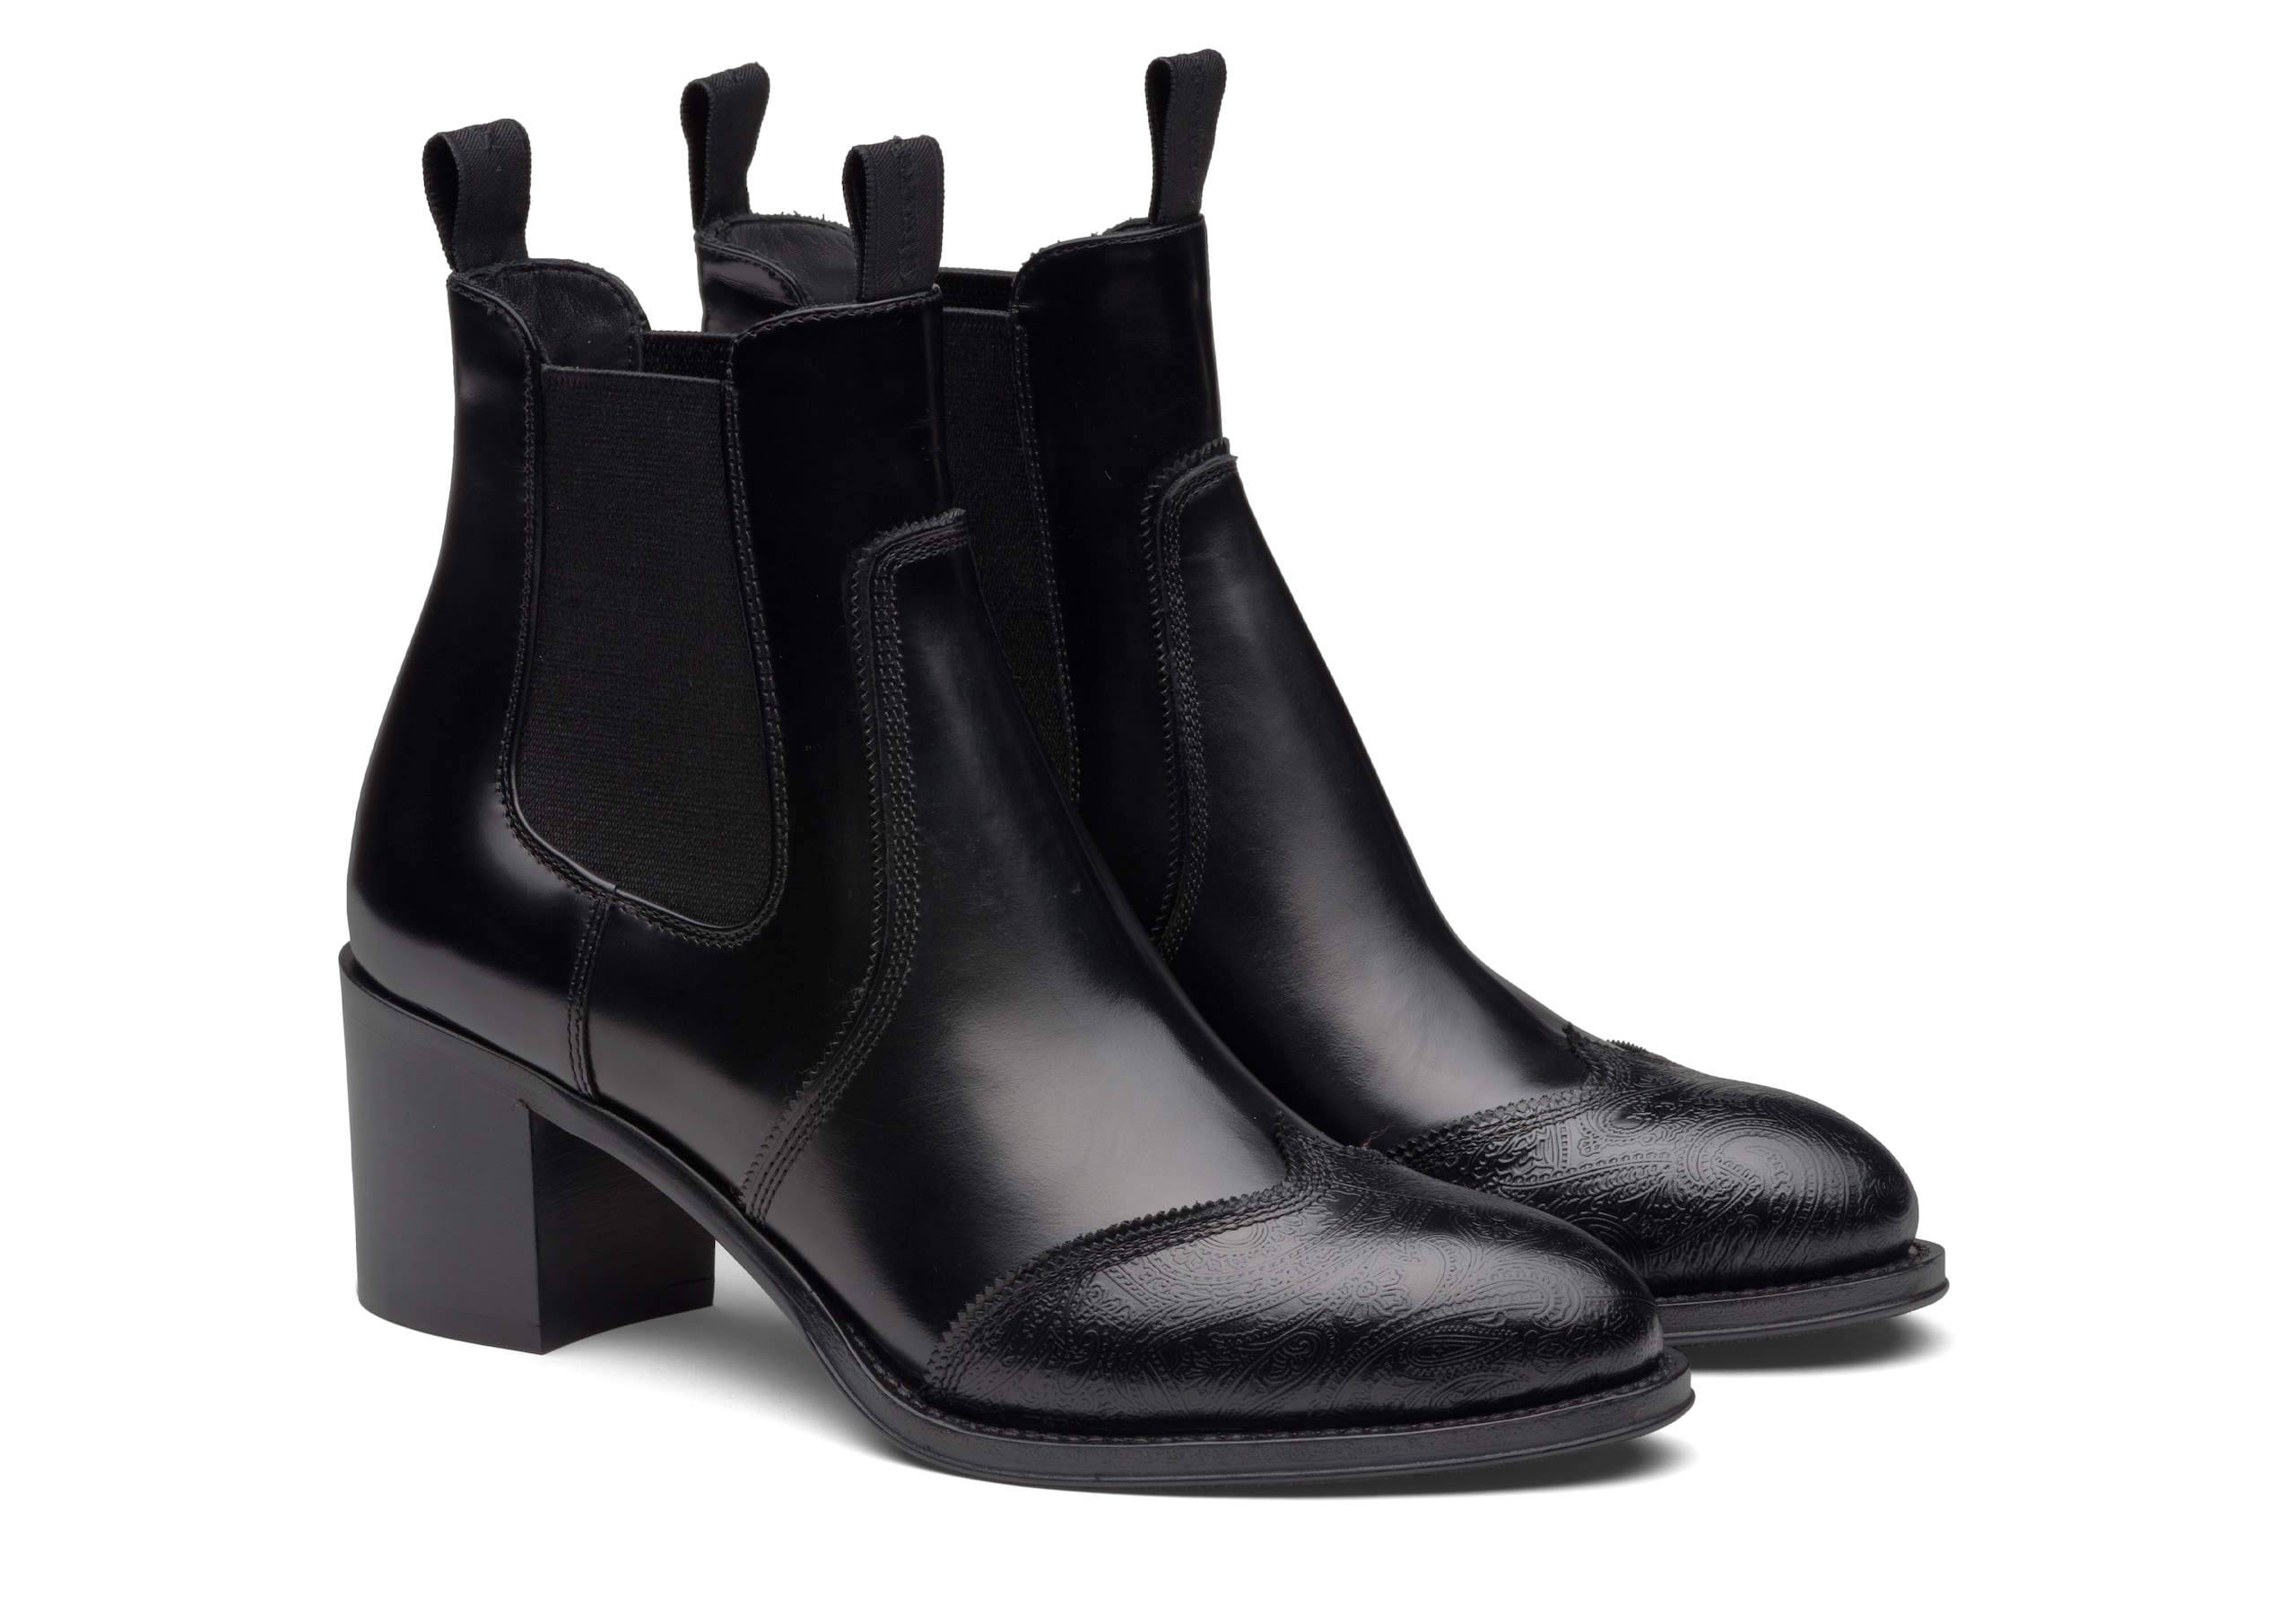 Eve 55 Church's Heeled Chelsea Boot Arabesque Black